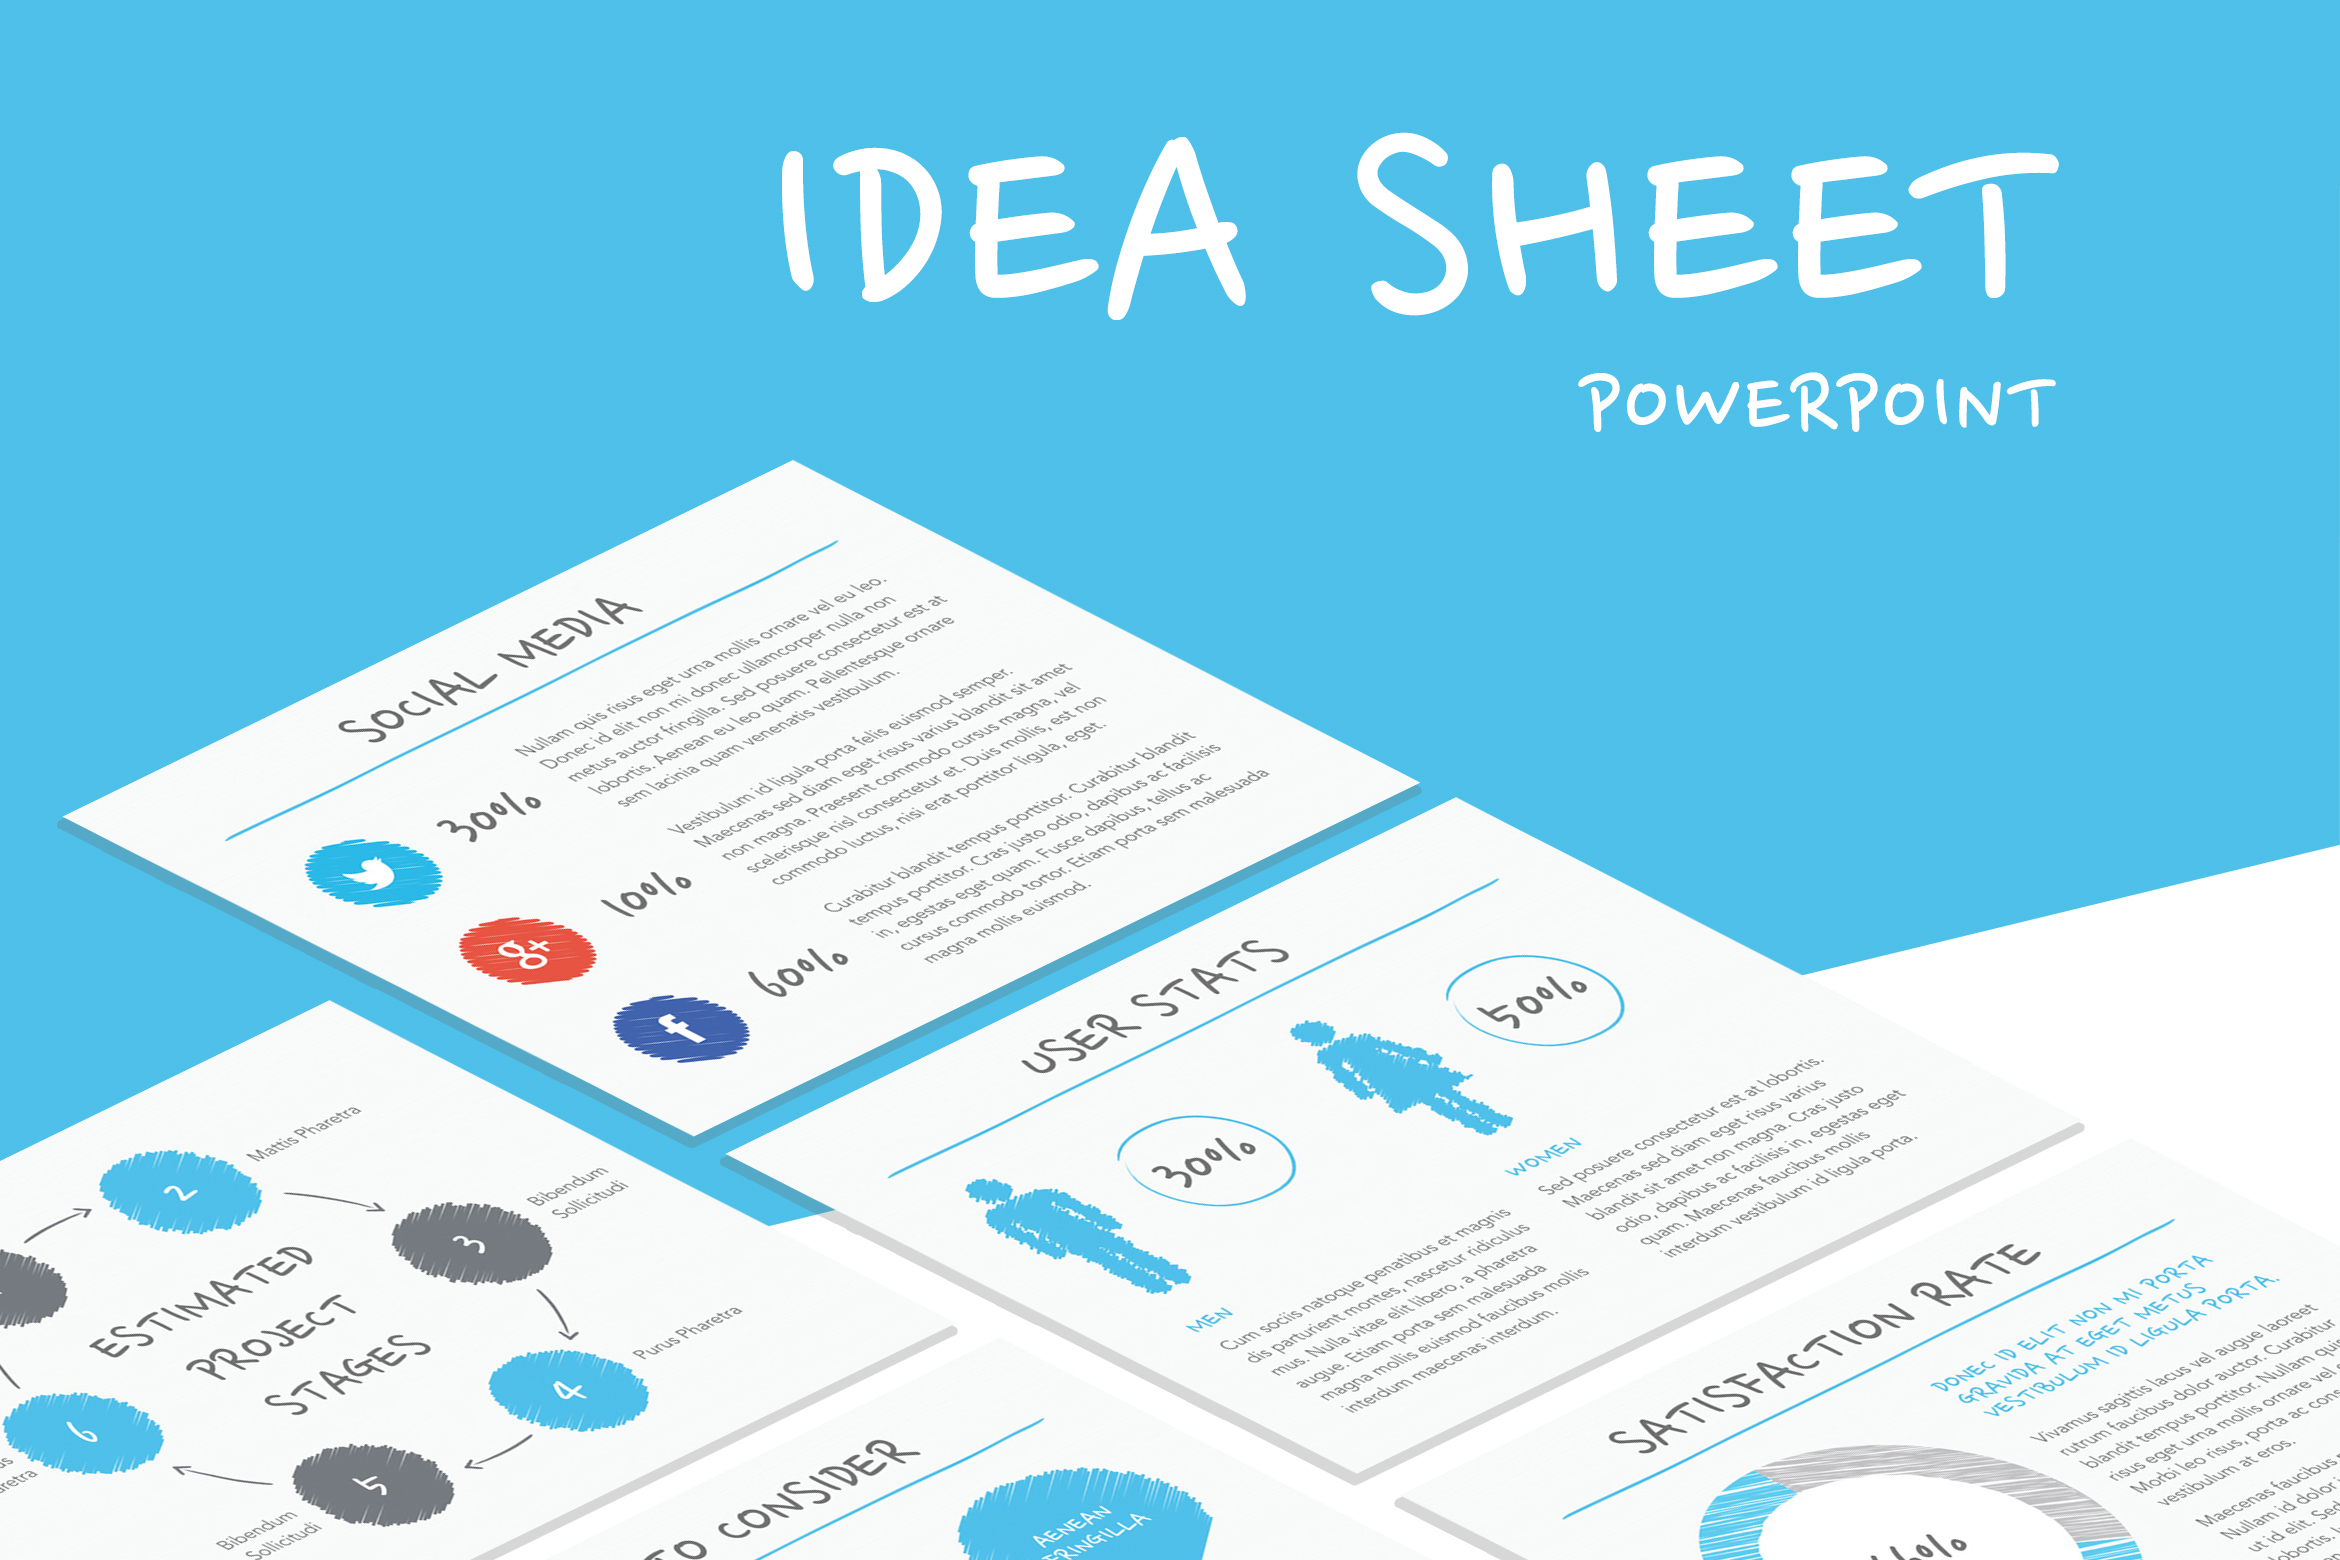 Idea Sheet PowerPoint Template example image 1